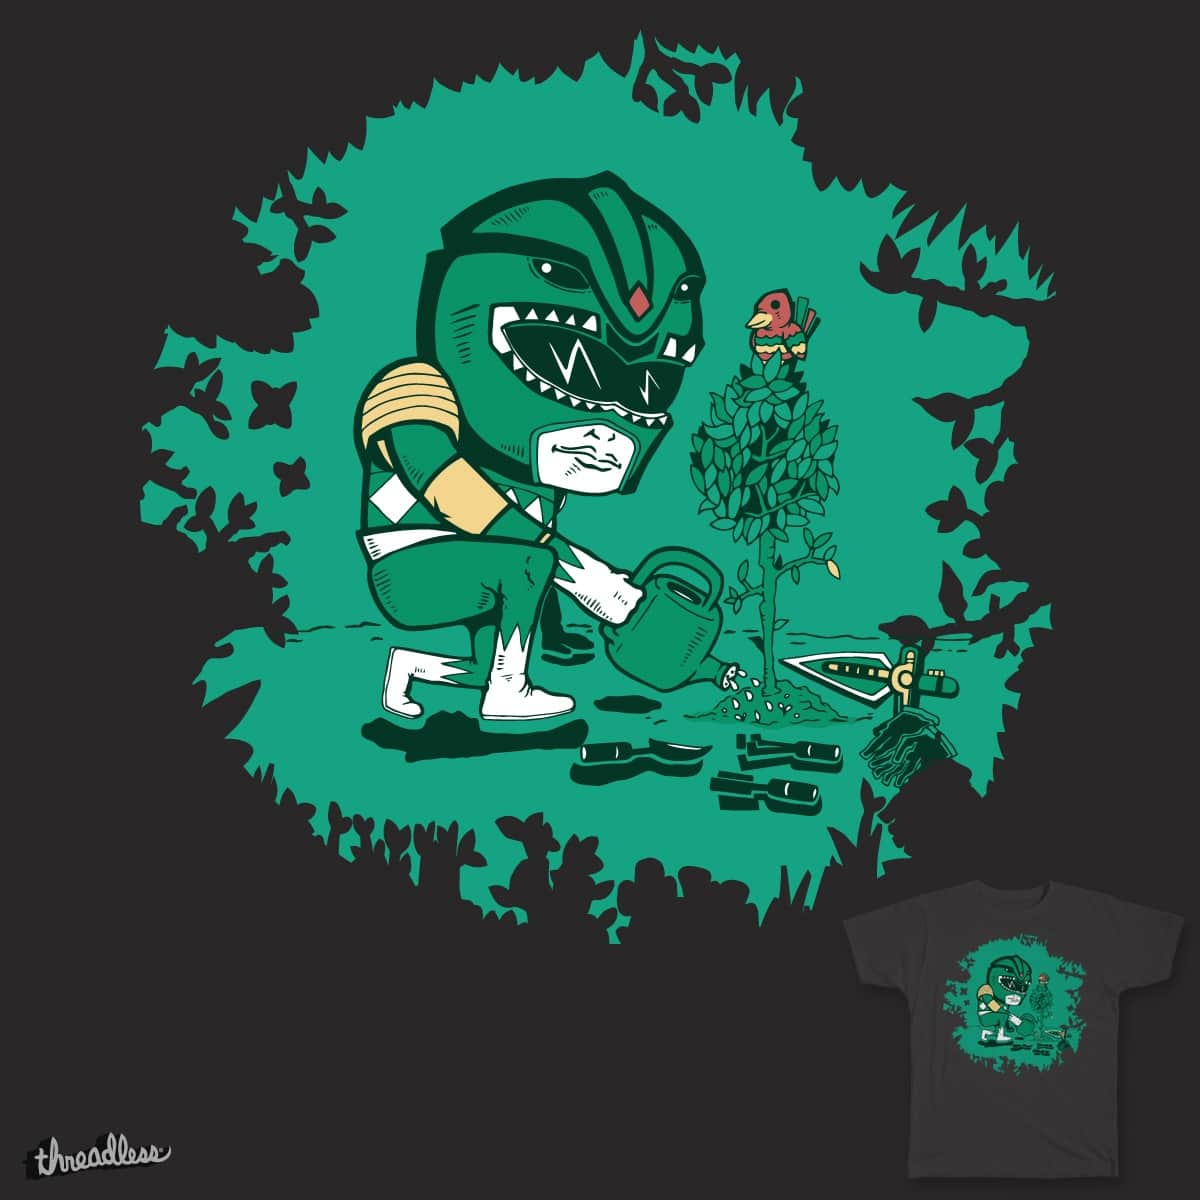 Saving the Green Planet by Timo_Ambo on Threadless